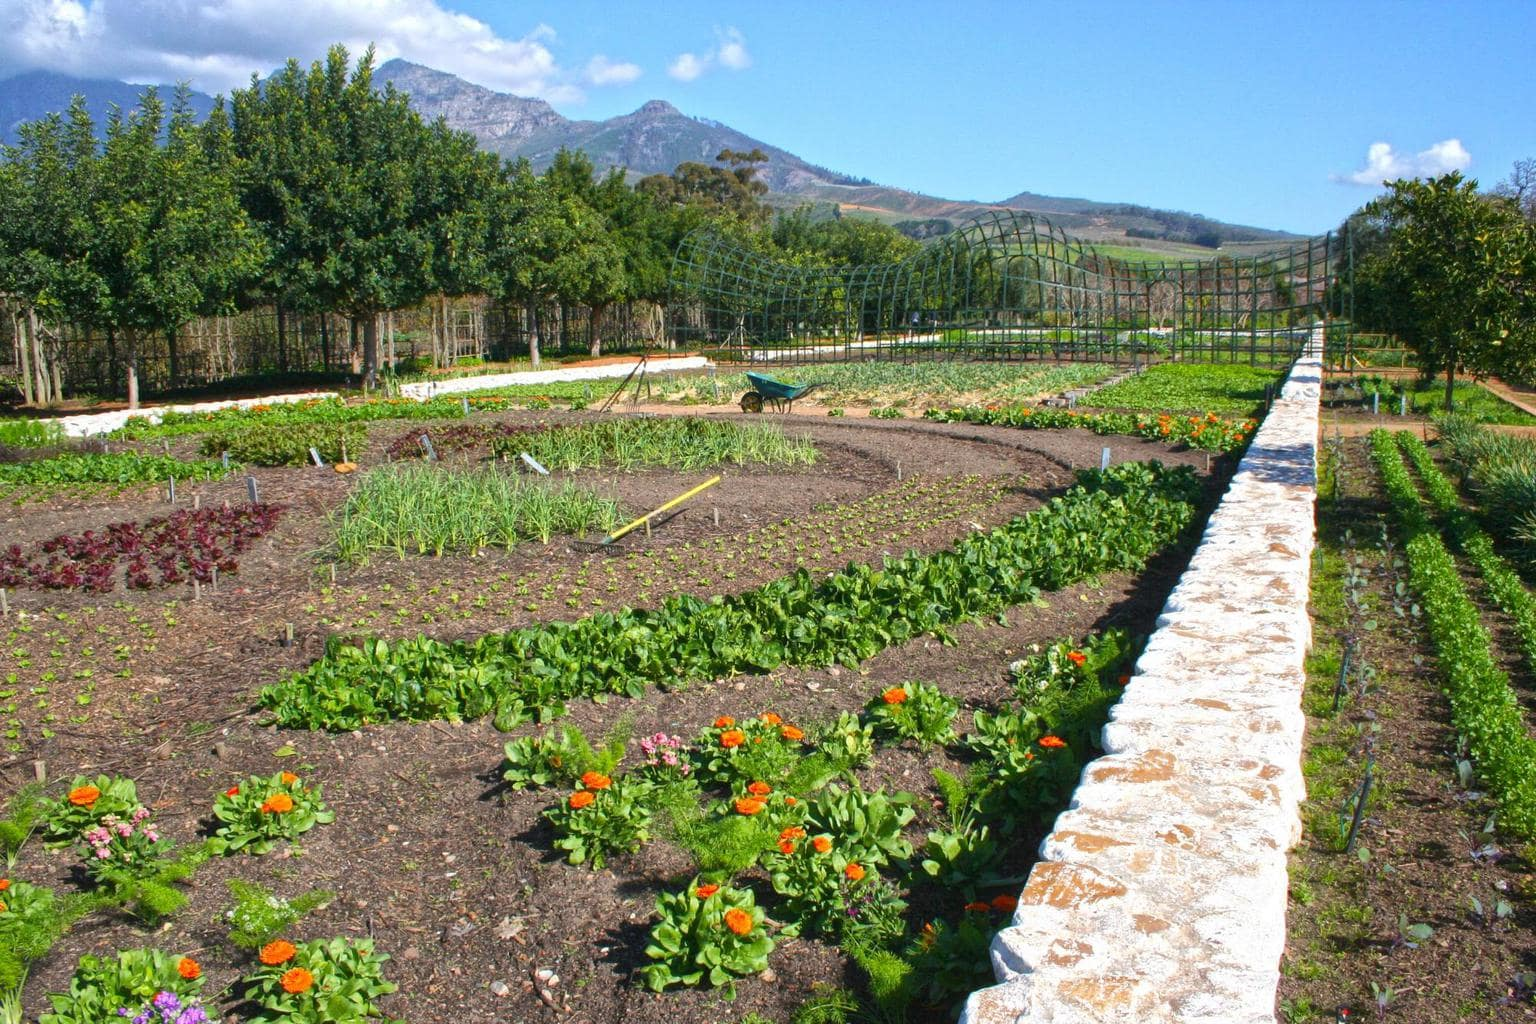 The gardens at Babylonstoren